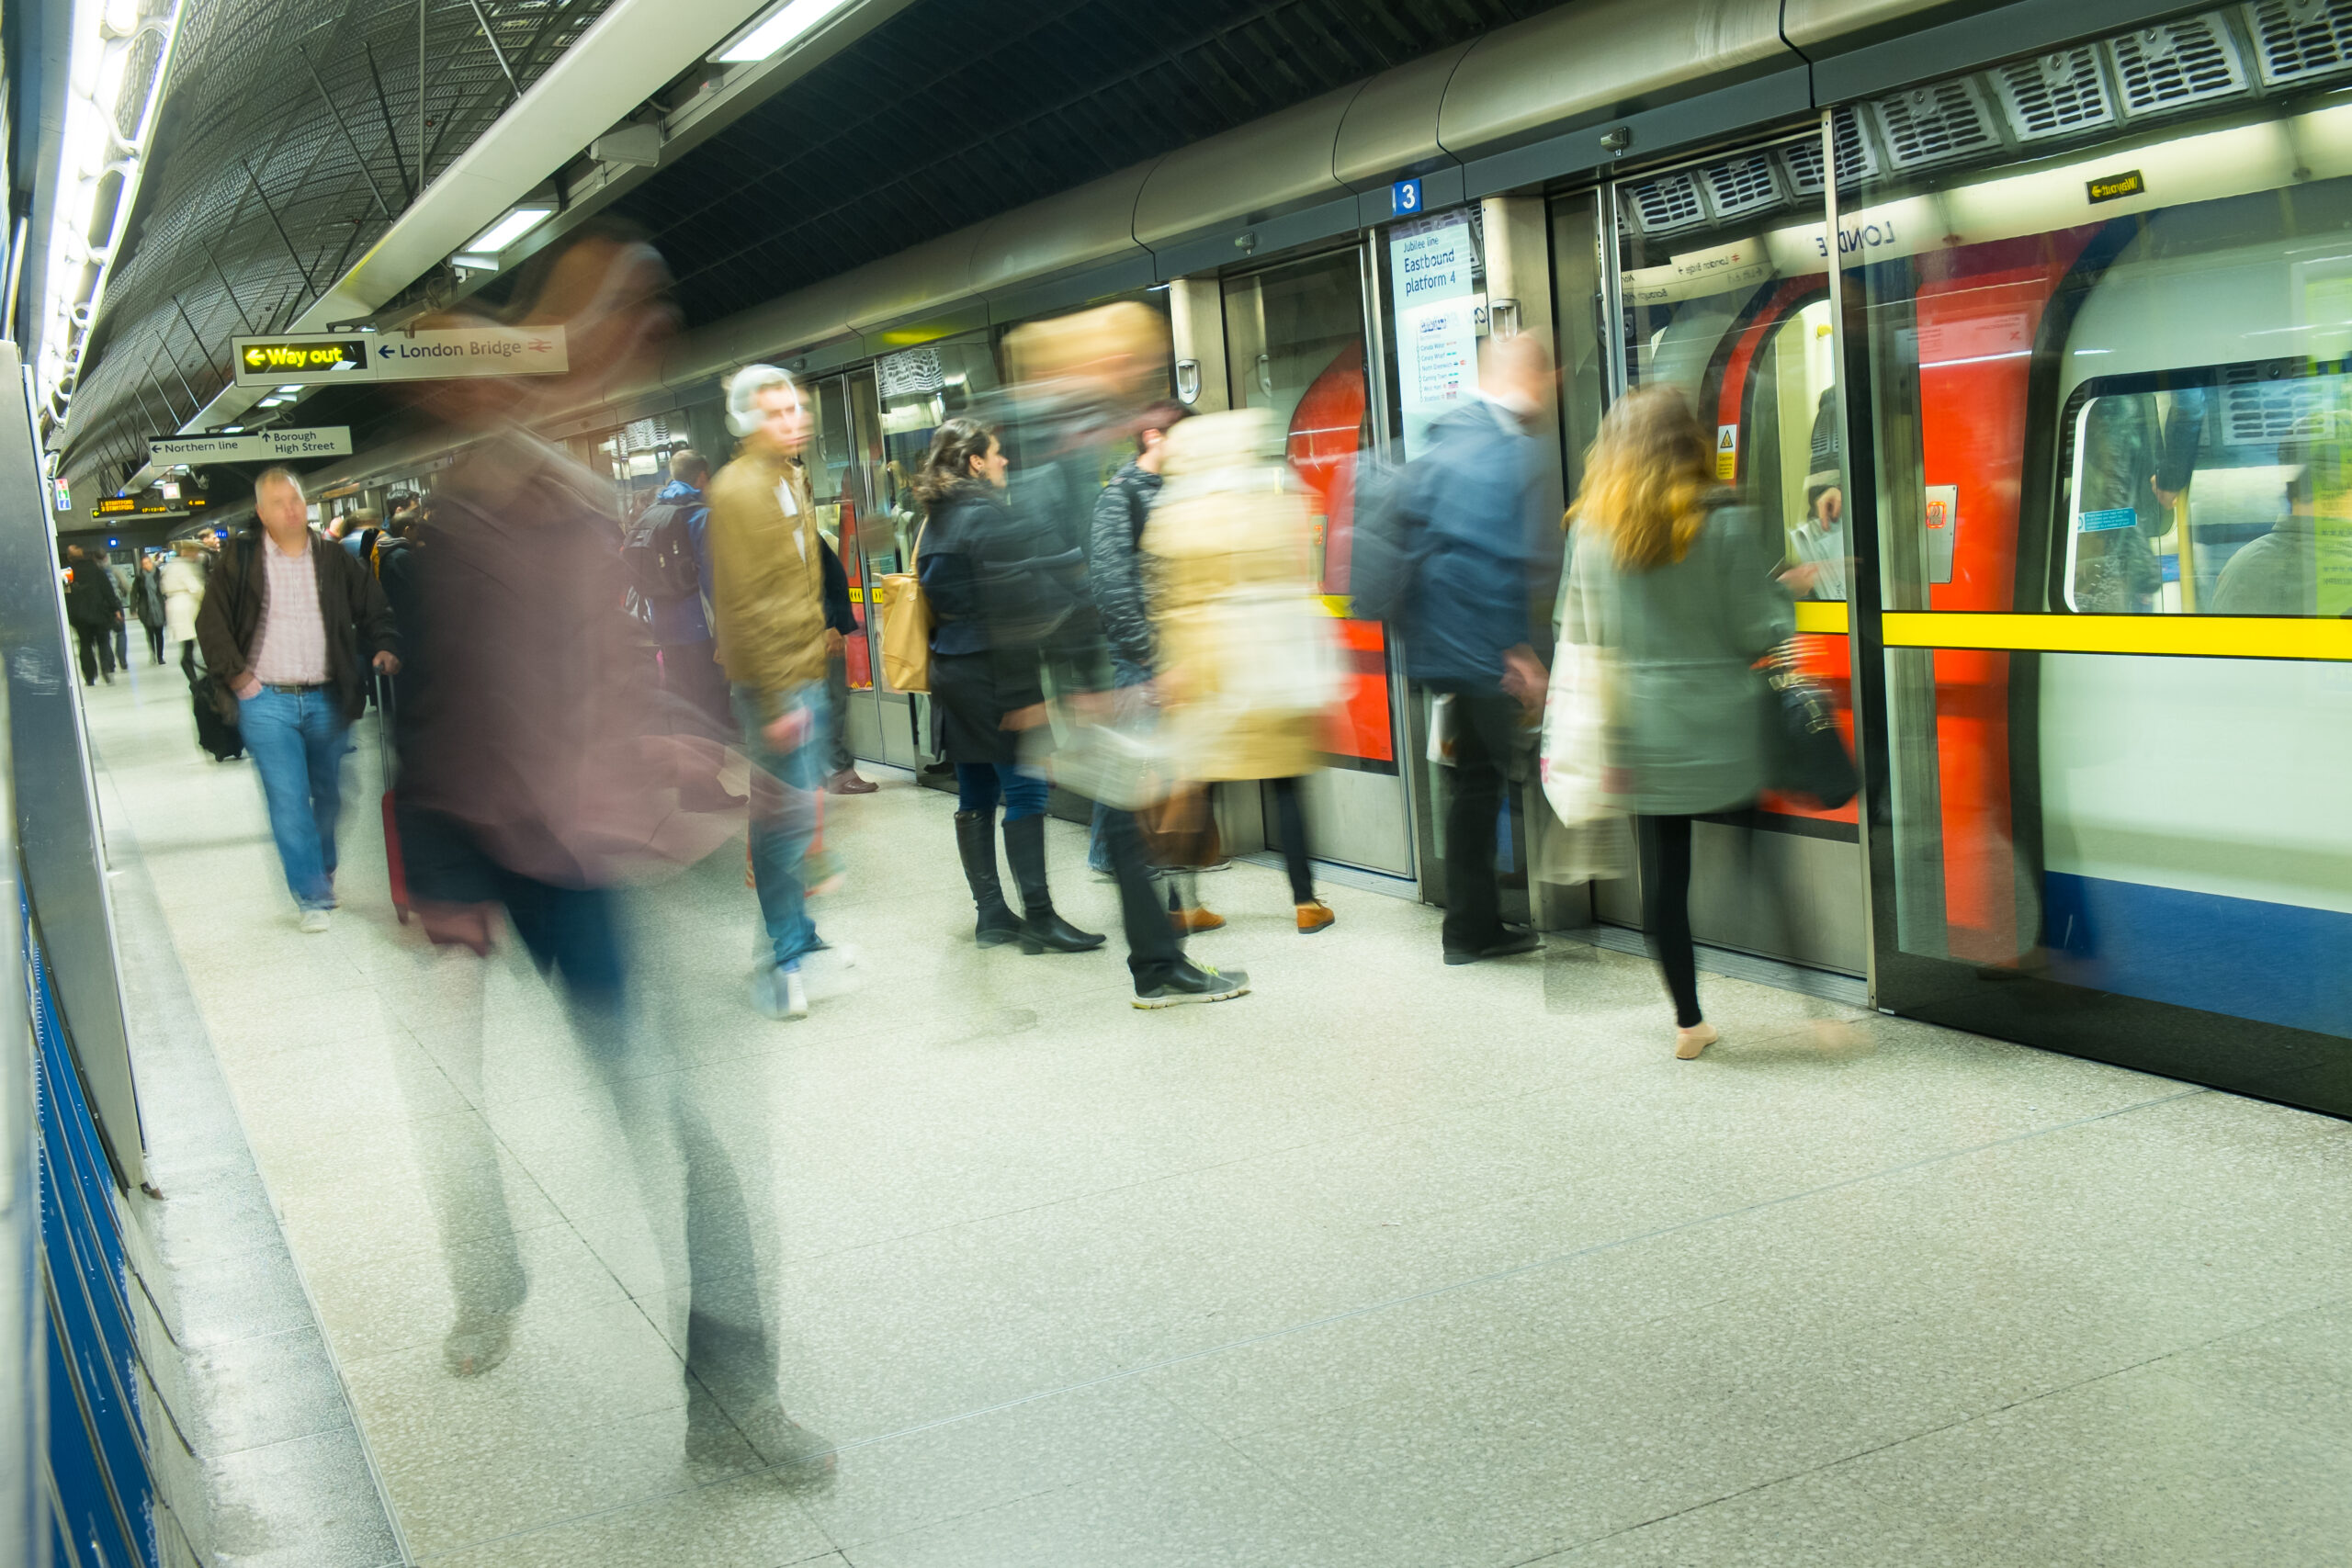 Boarding and exit are one of the most critical processes in railway safety